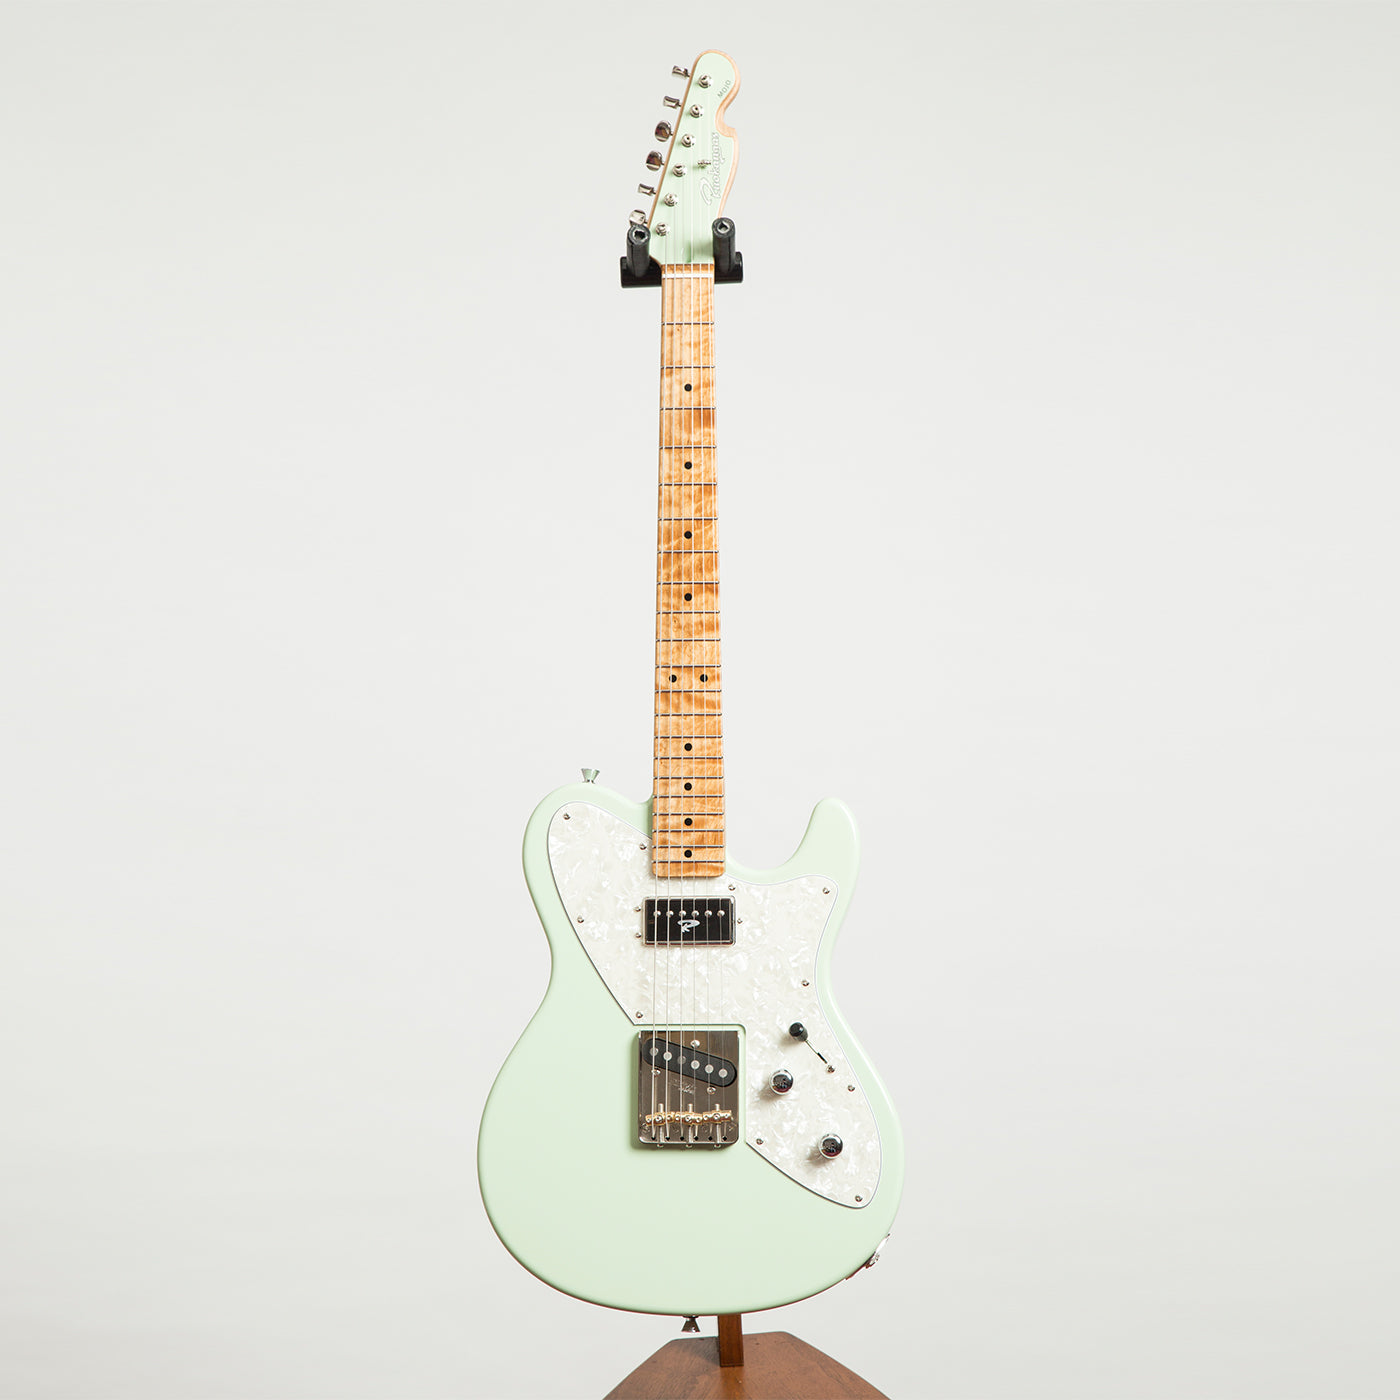 ruokangas guitars mojo classic surf green 318 electric guitar the north american guitar. Black Bedroom Furniture Sets. Home Design Ideas